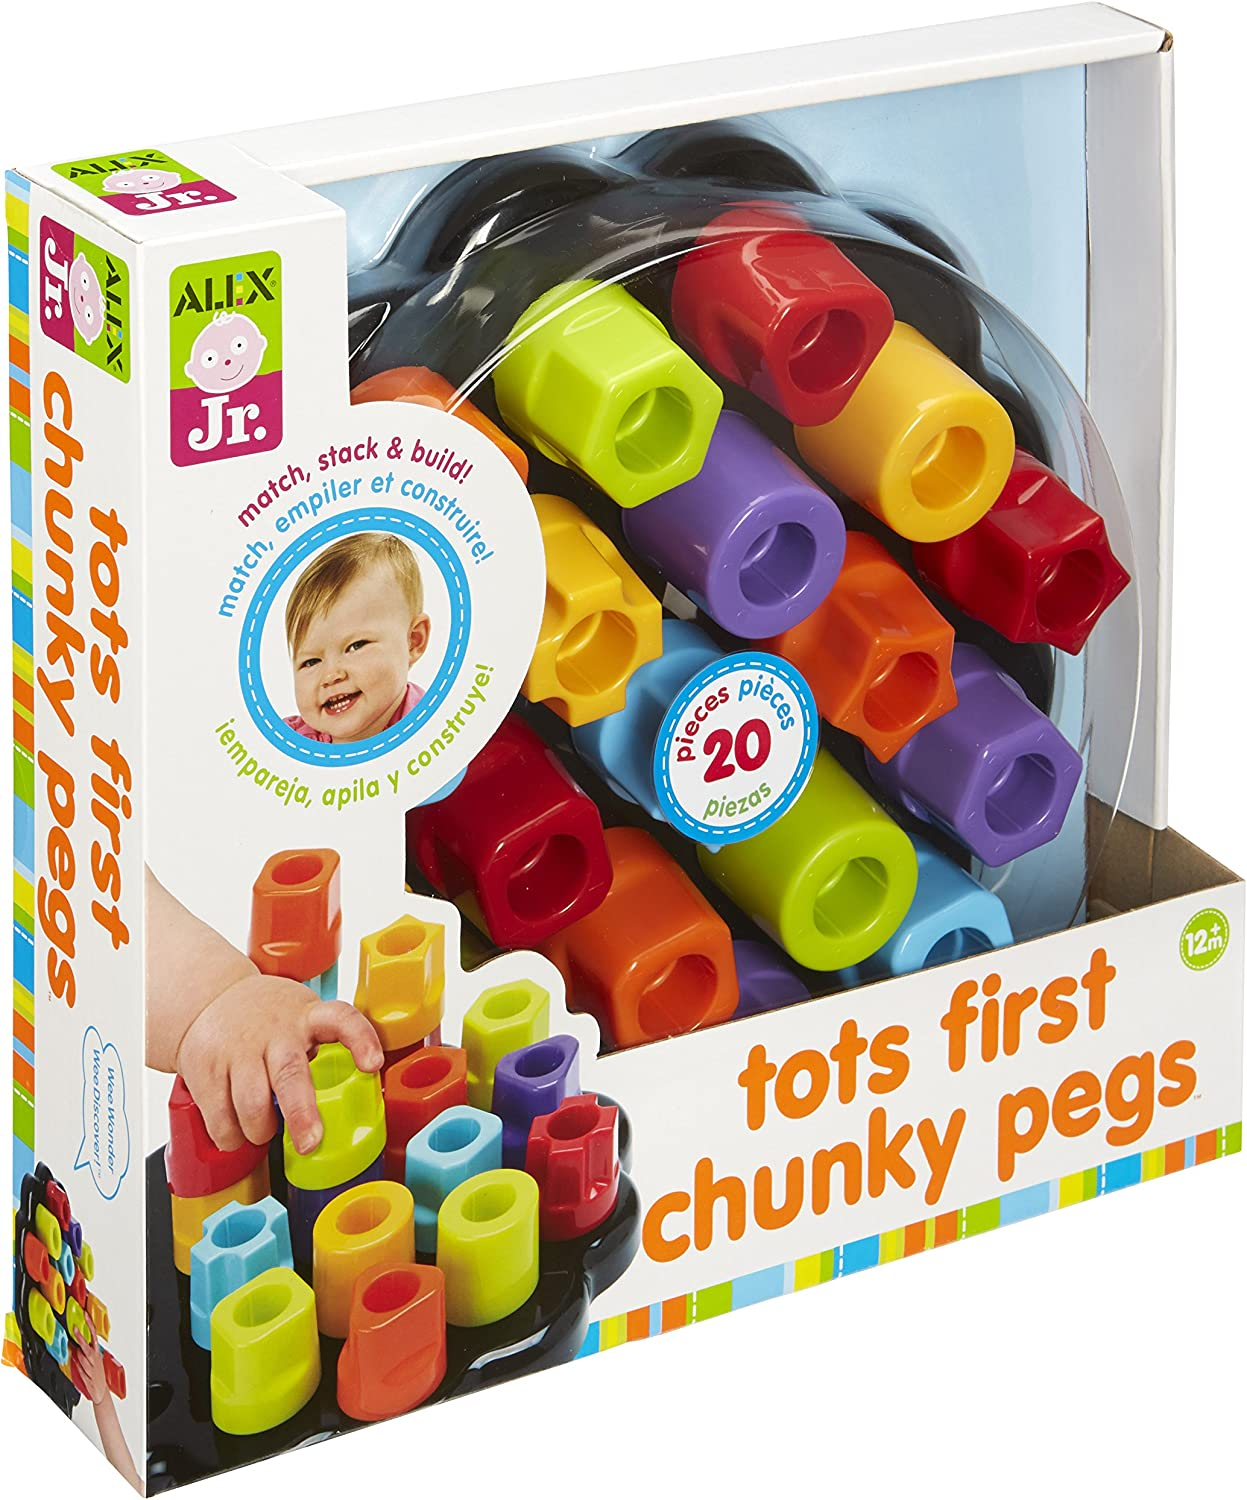 Alex Jr. Tots First Chunky Pegs Max 70% OFF Al sold out. Baby Toddler Activity Sorting